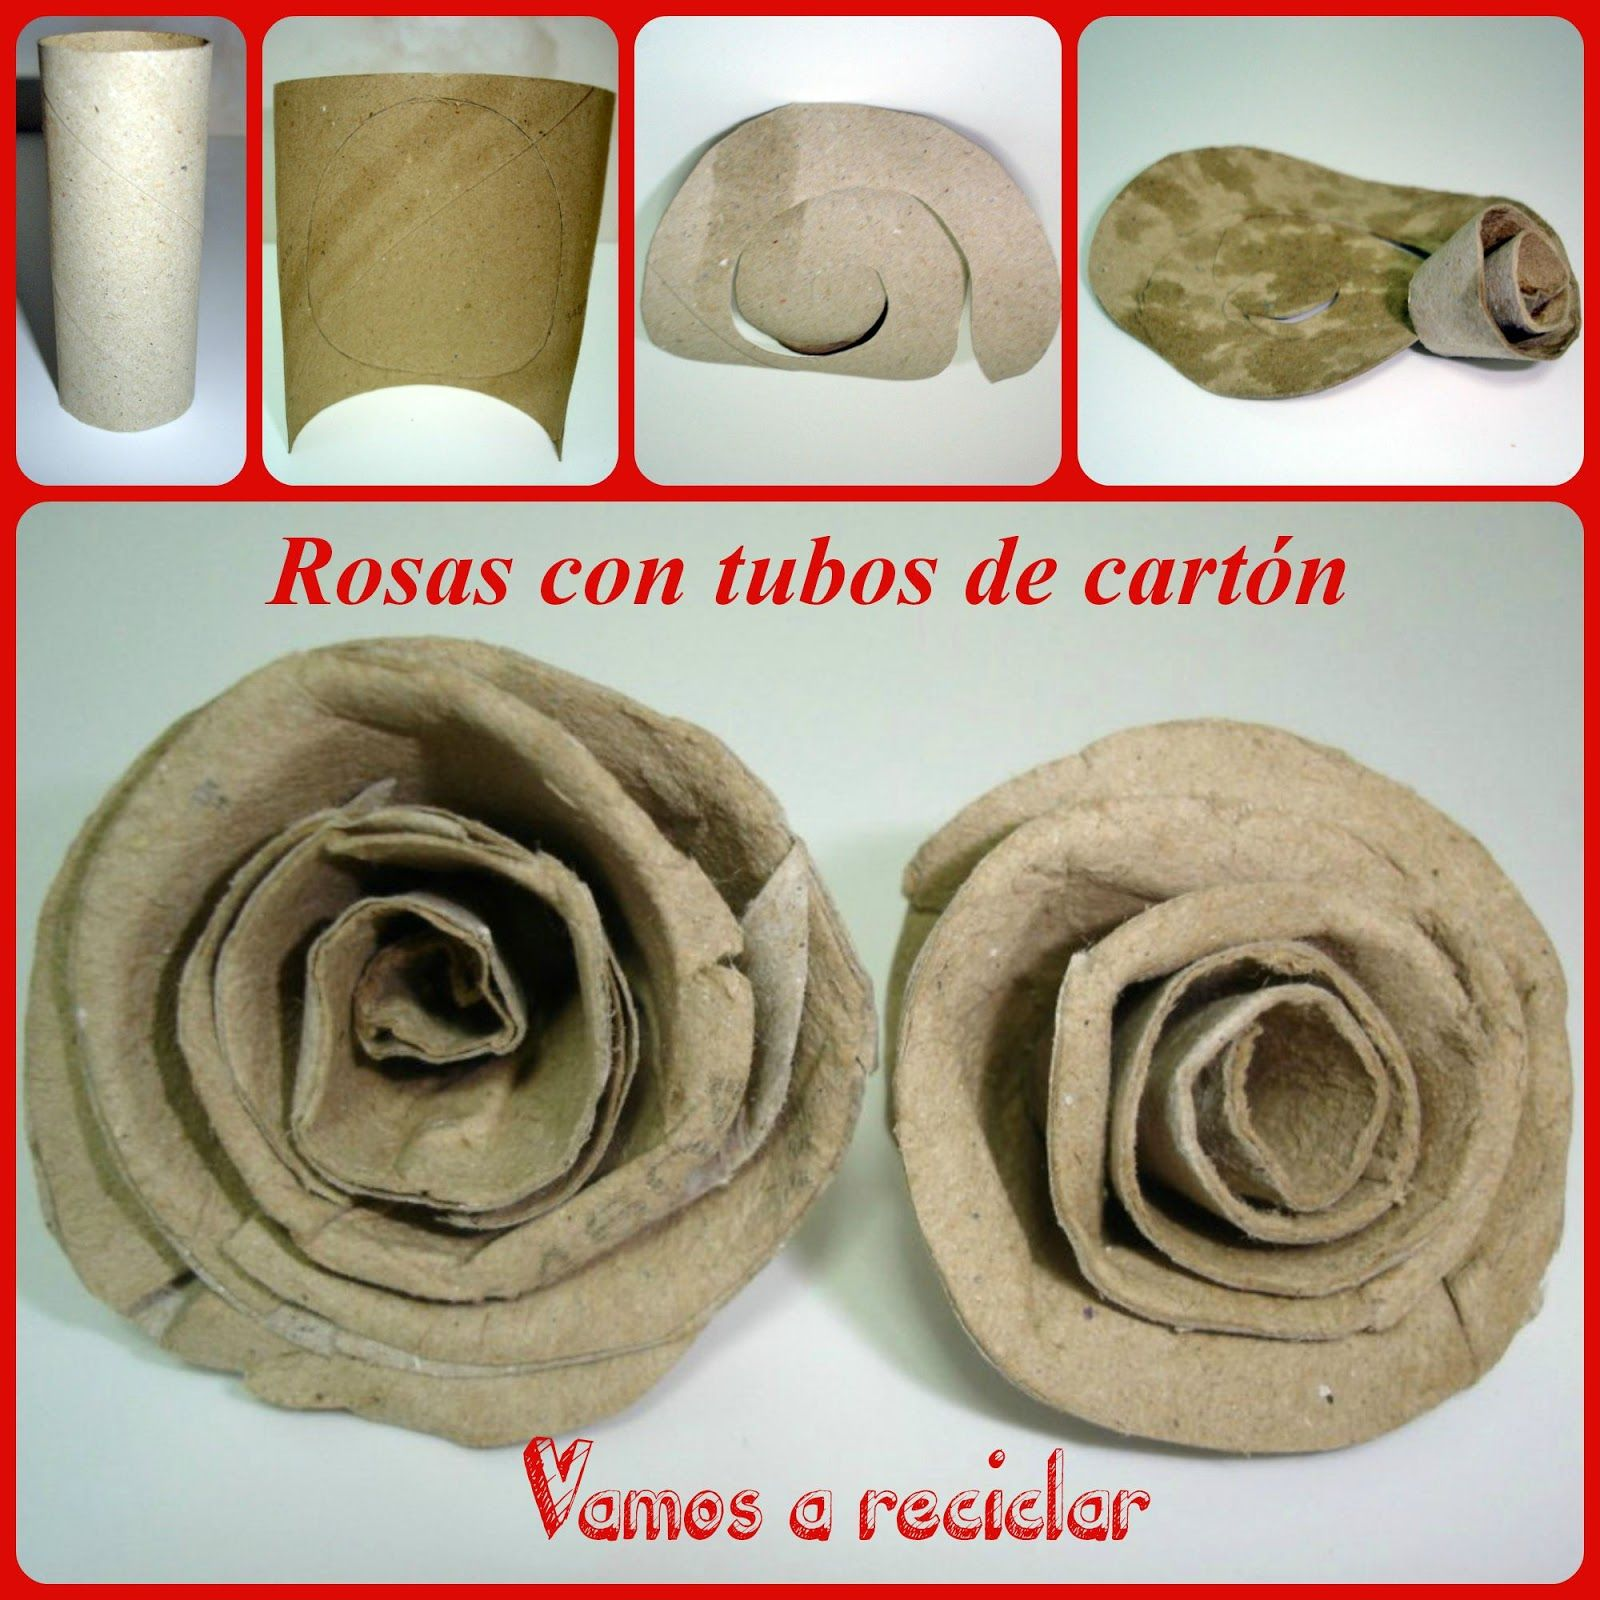 Roses from toilet paper rolls spanish but visual same idea as roses from toilet paper rolls spanish but visual same idea as when i carve jeuxipadfo Images